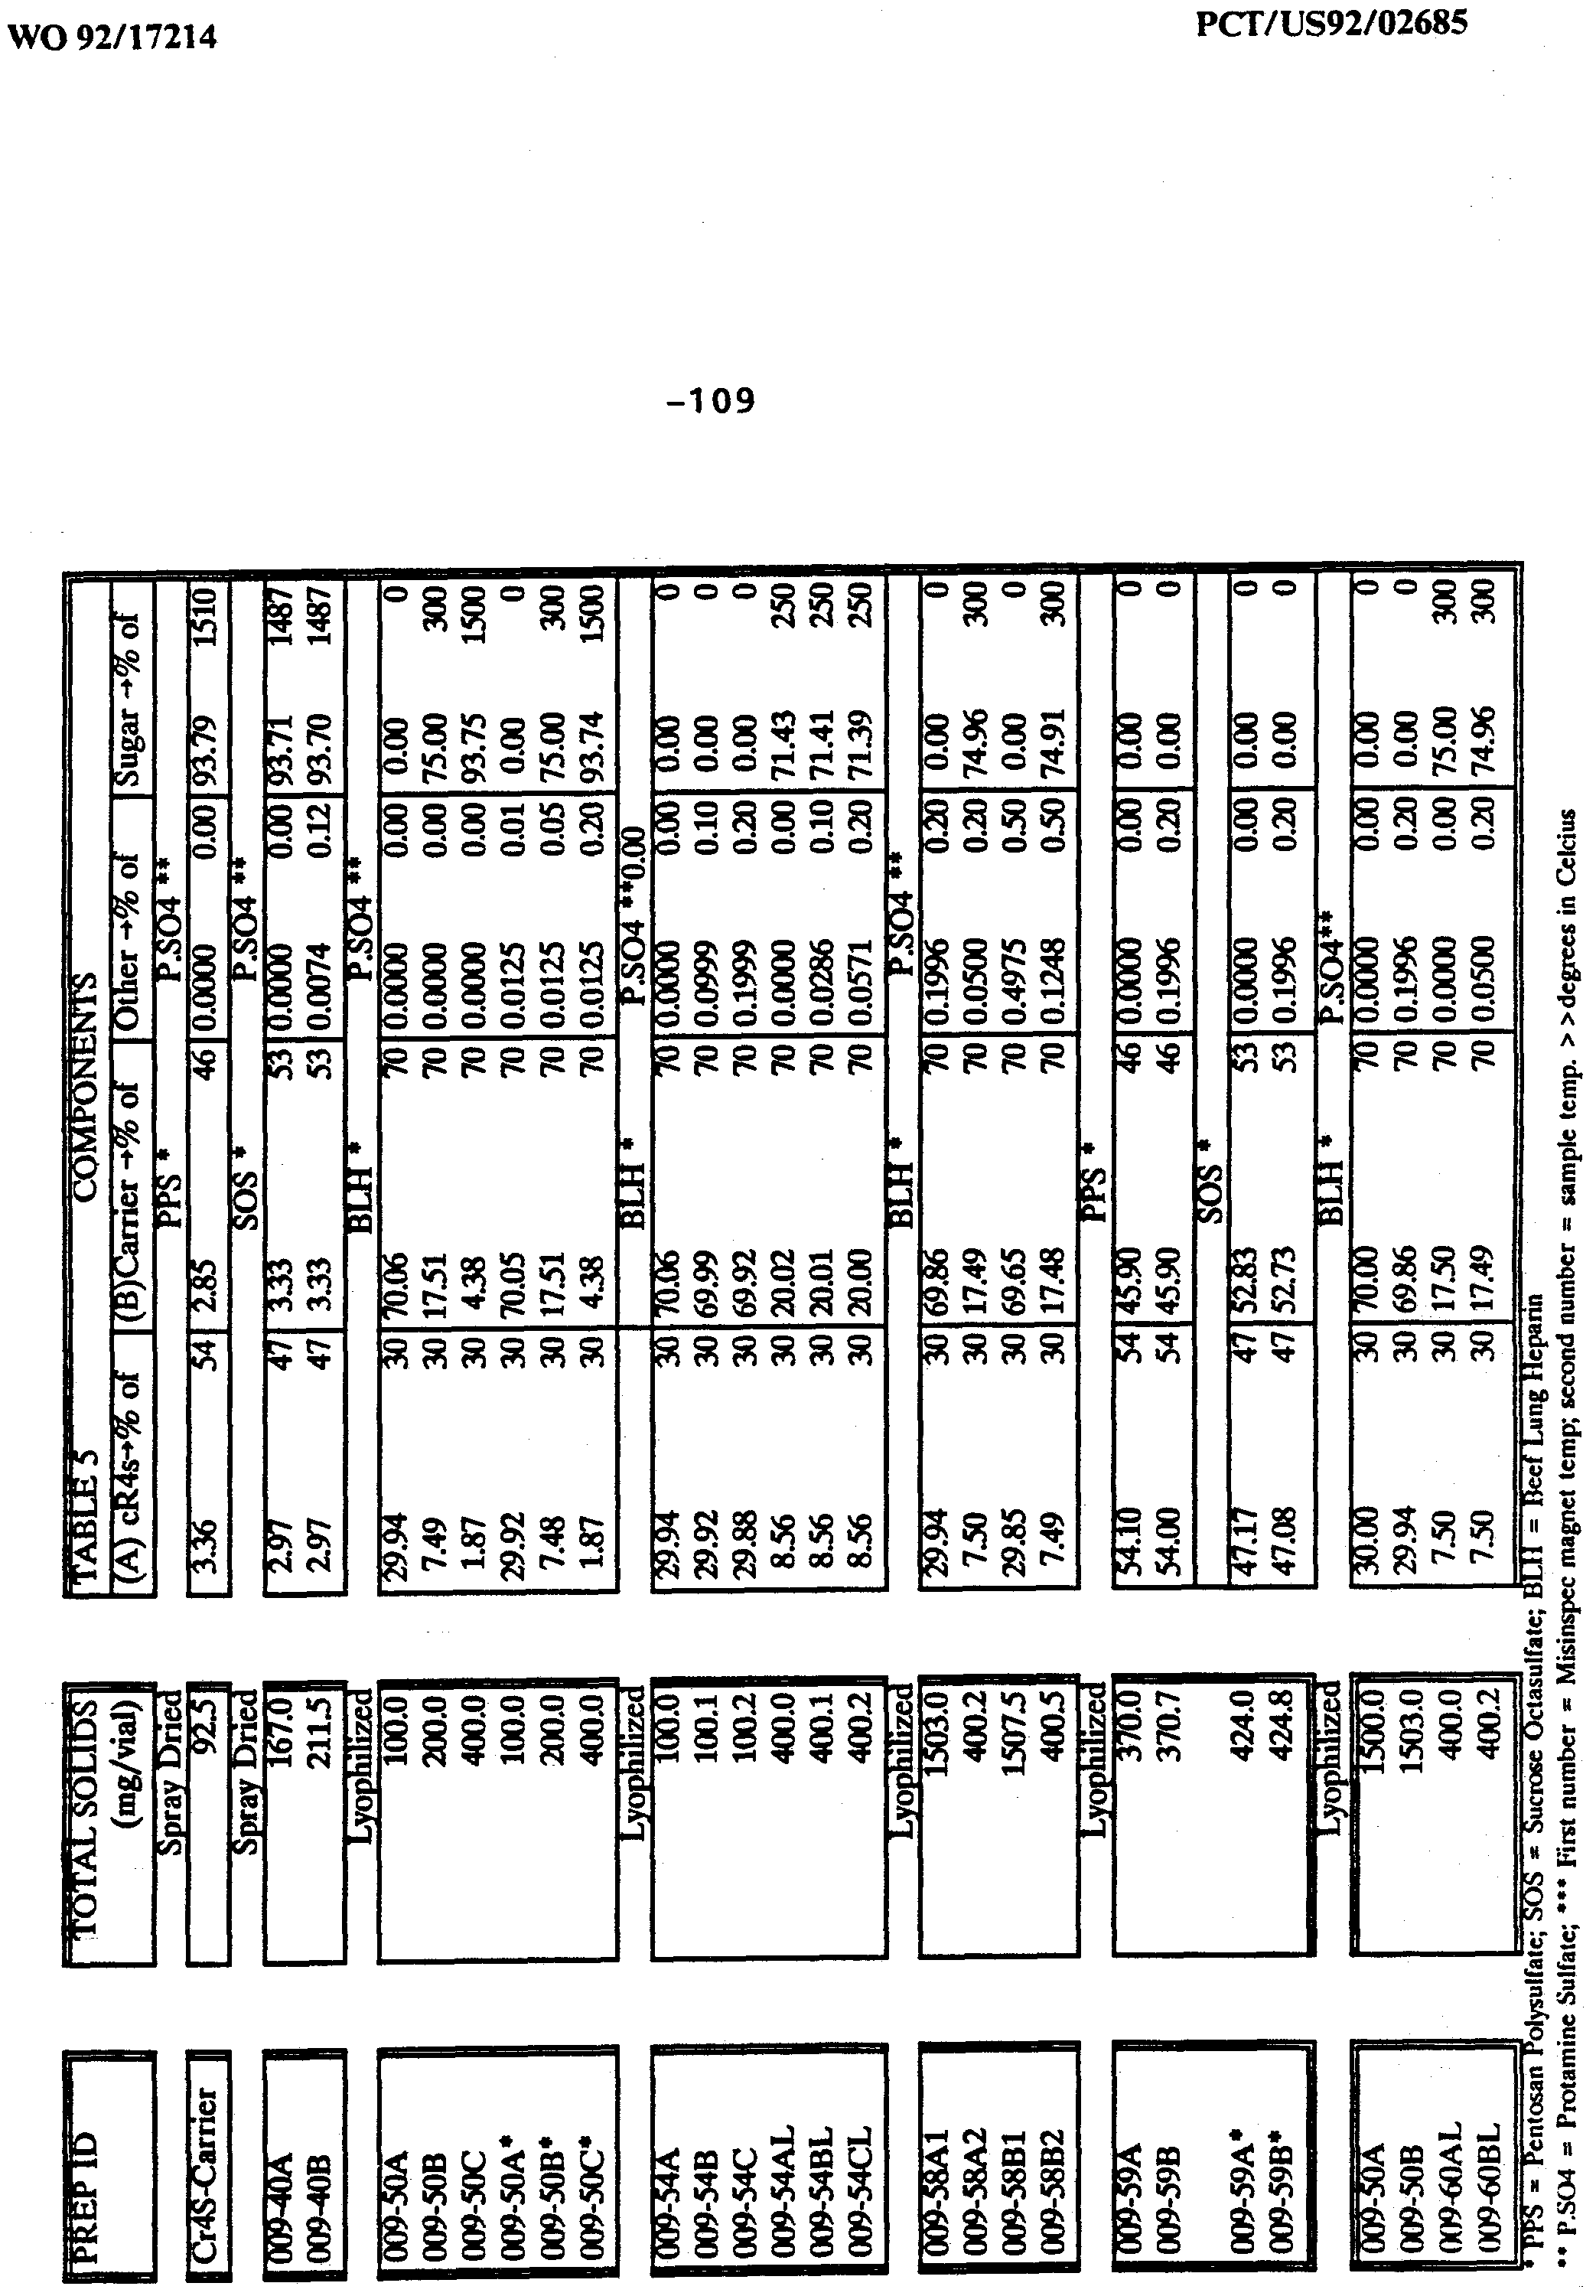 WO1992017214A2 - Physically and chemically stabilized polyatomic